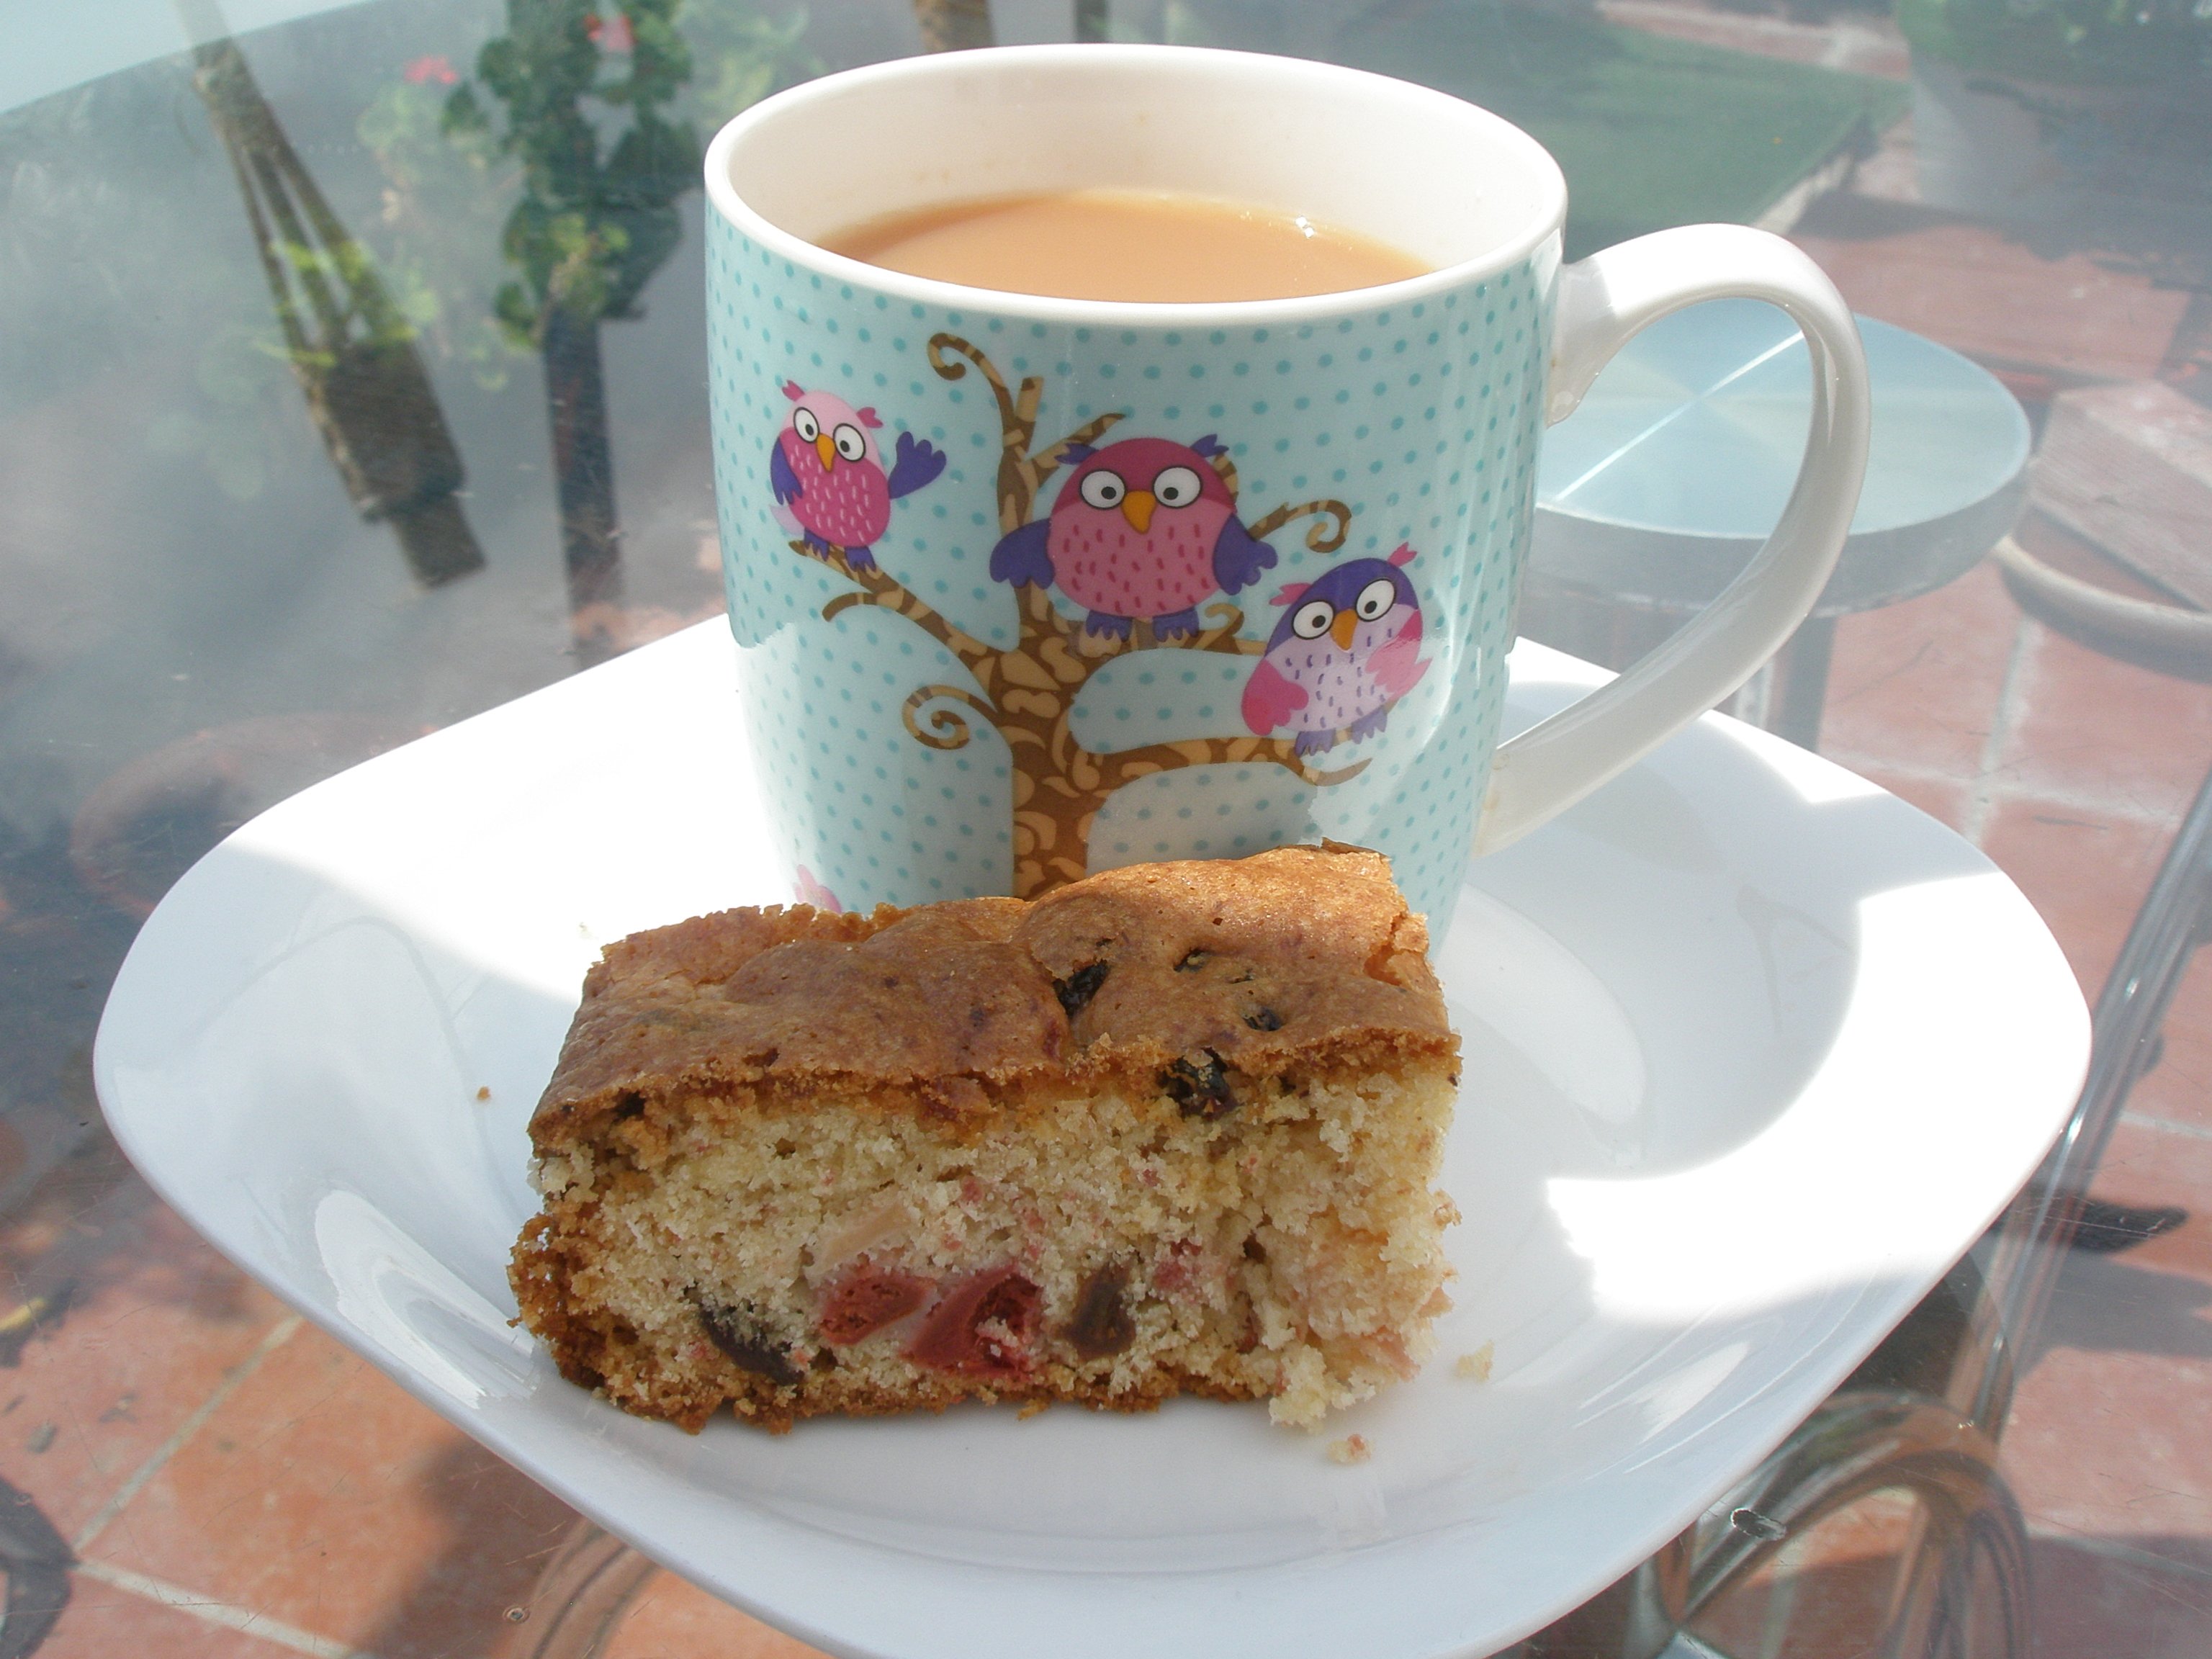 Cup Of Tea And A Slice Of Cake